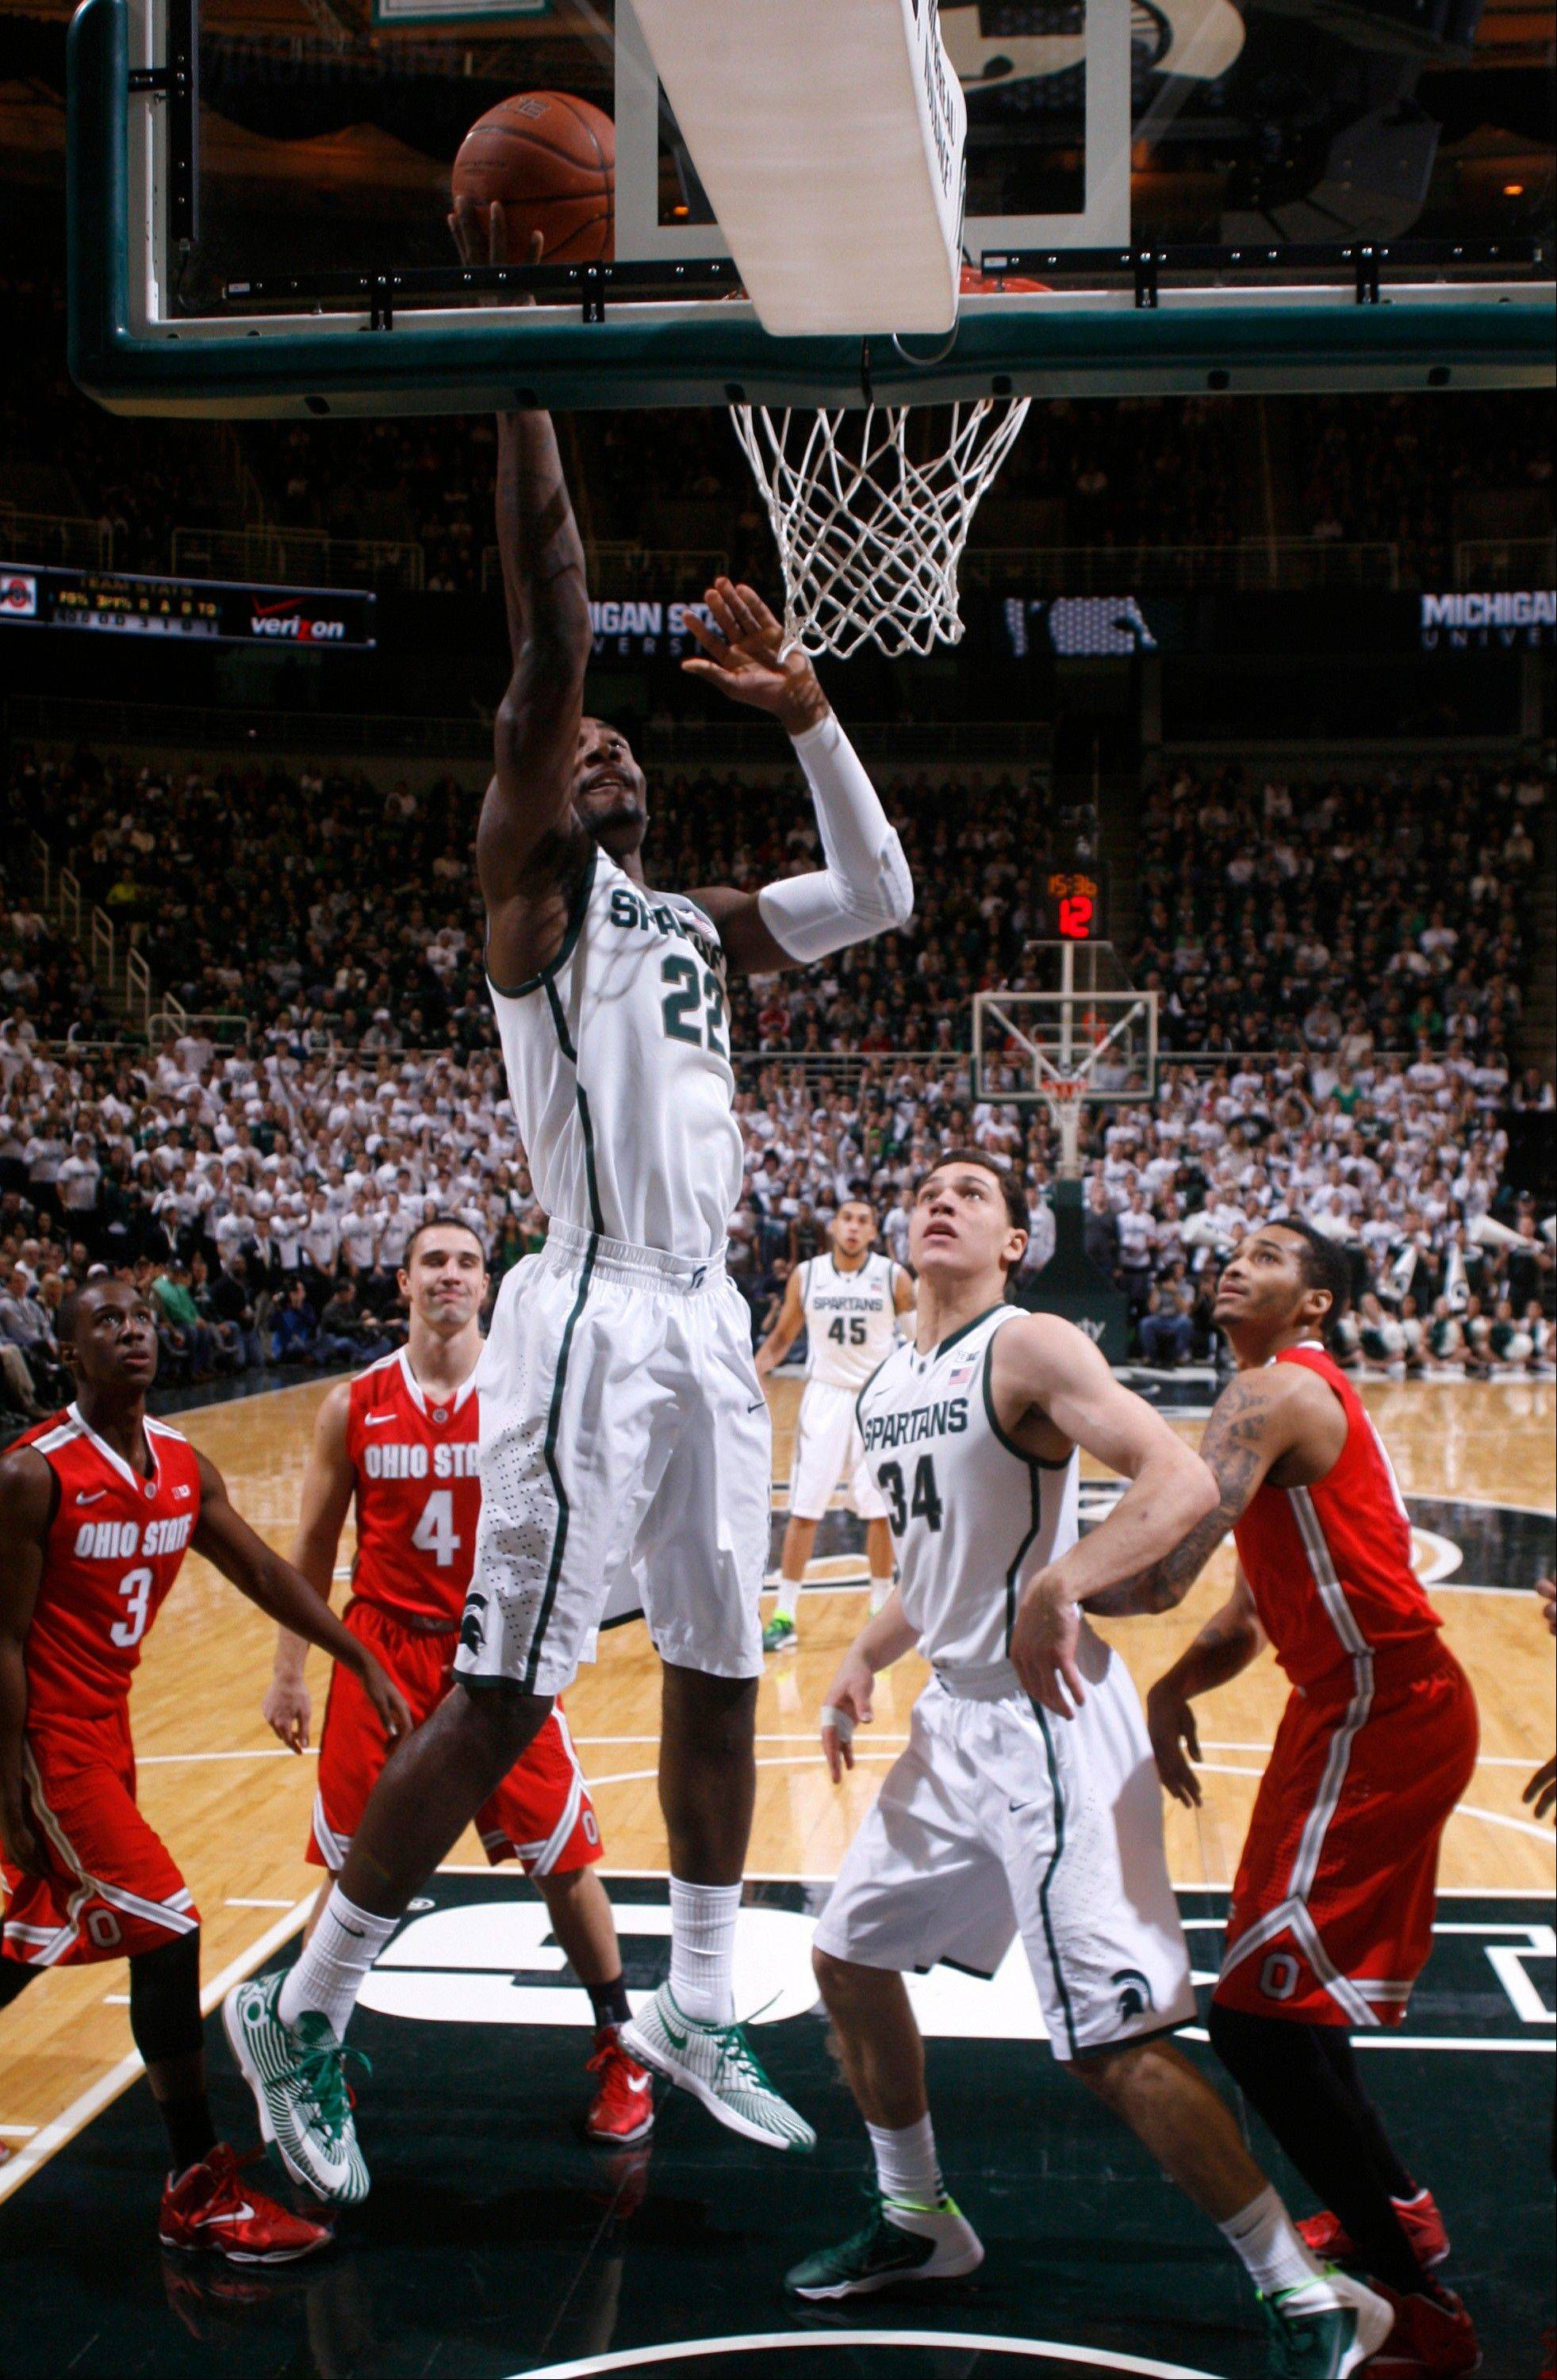 Michigan State's Branden Dawson lays the ball up as Ohio State's Shanon Scott (3), Aaron Craft (4), and LaQuinton Ross, right, and Michigan State's Gavin Schilling watch during the first half Tuesday in East Lansing, Mich.